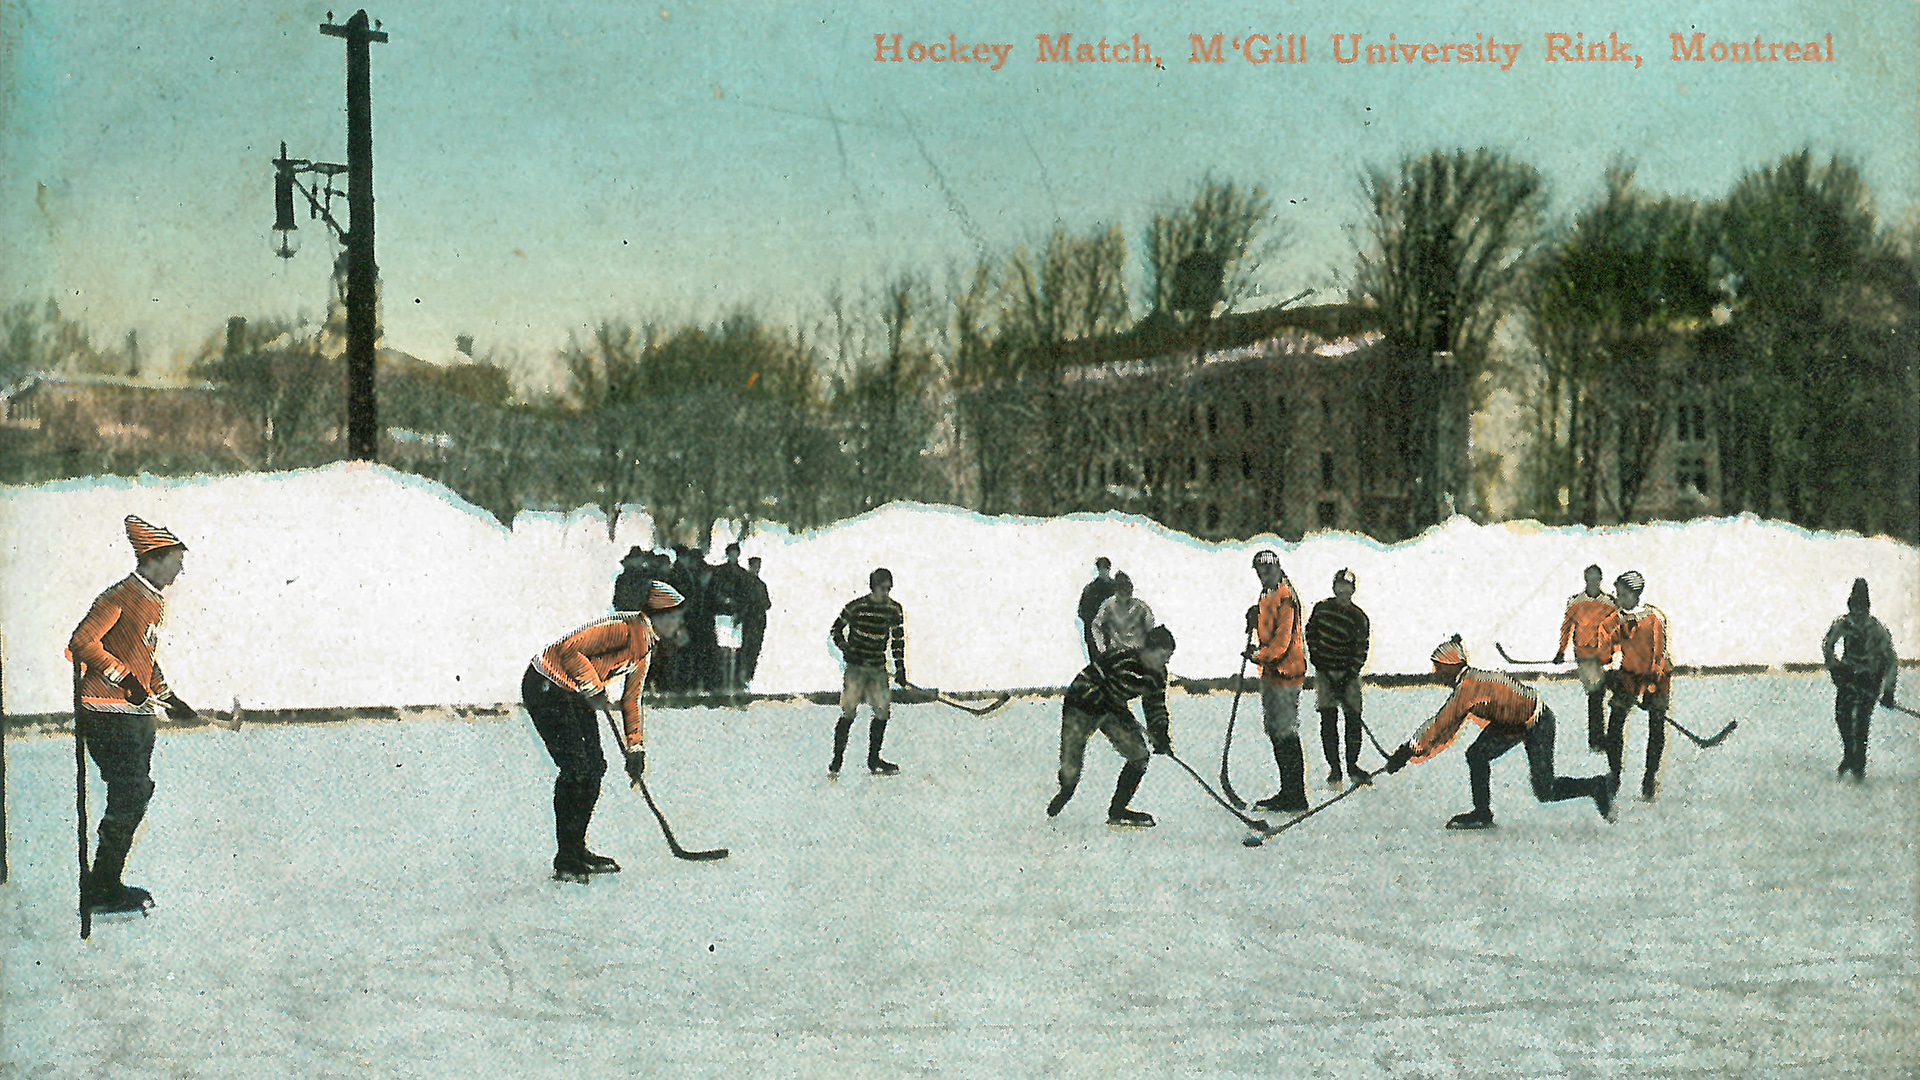 Postcard of hockey match at McGill University, 1097, The Ian C. Pilarczyk collection, McGill University Archives